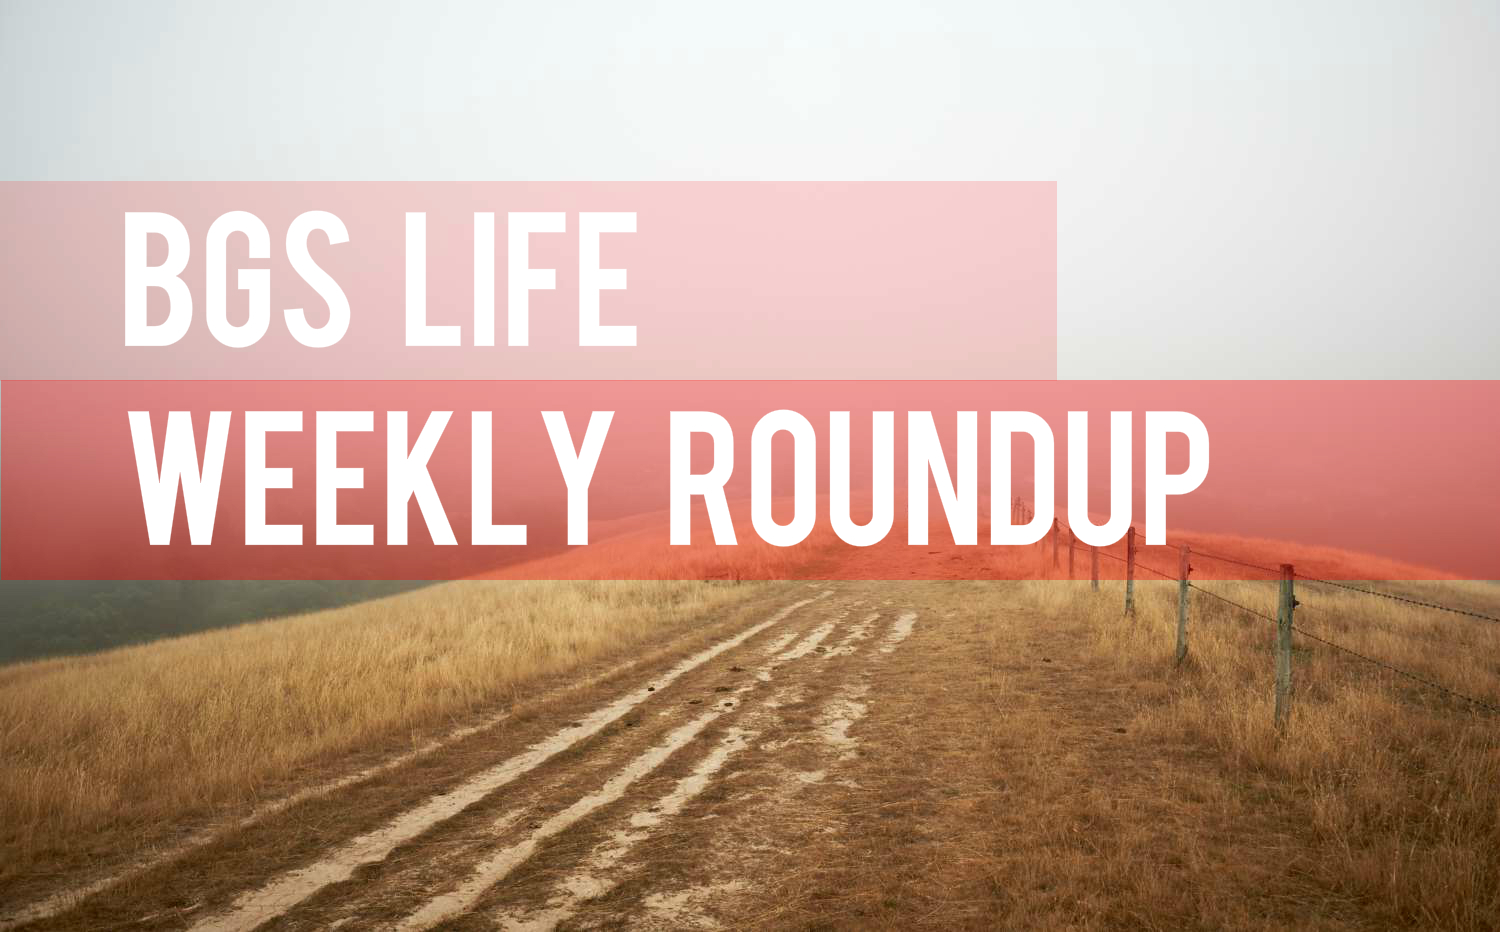 The BGS Life Weekly Roundup: Perfect Eggs, Chef Paul, Love Letters and More